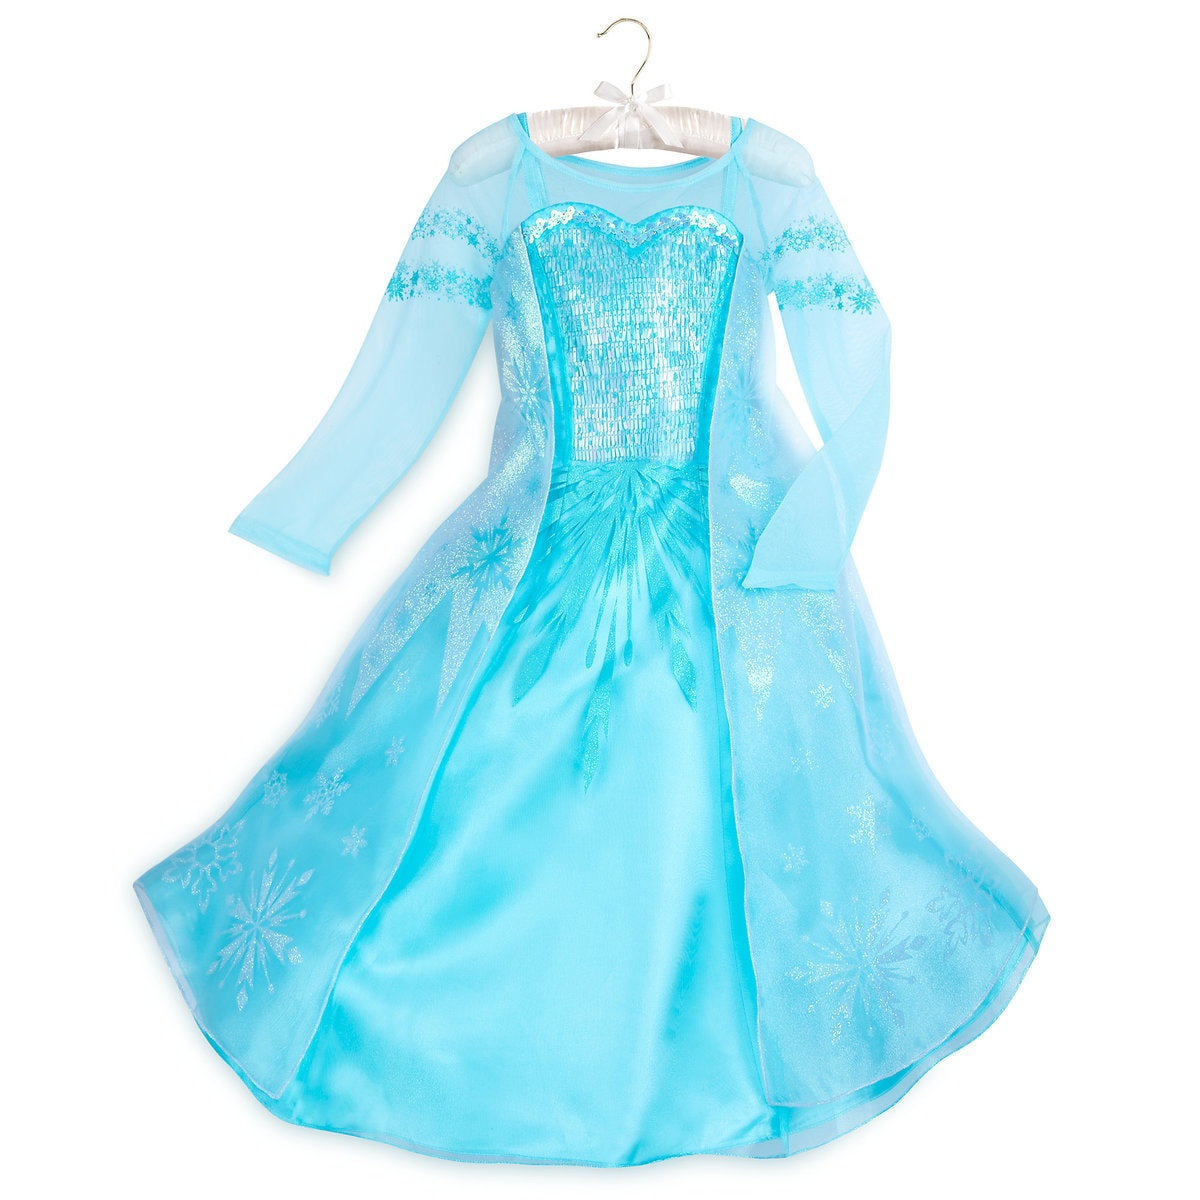 Product Image of Elsa Costume for Kids - Frozen # 1